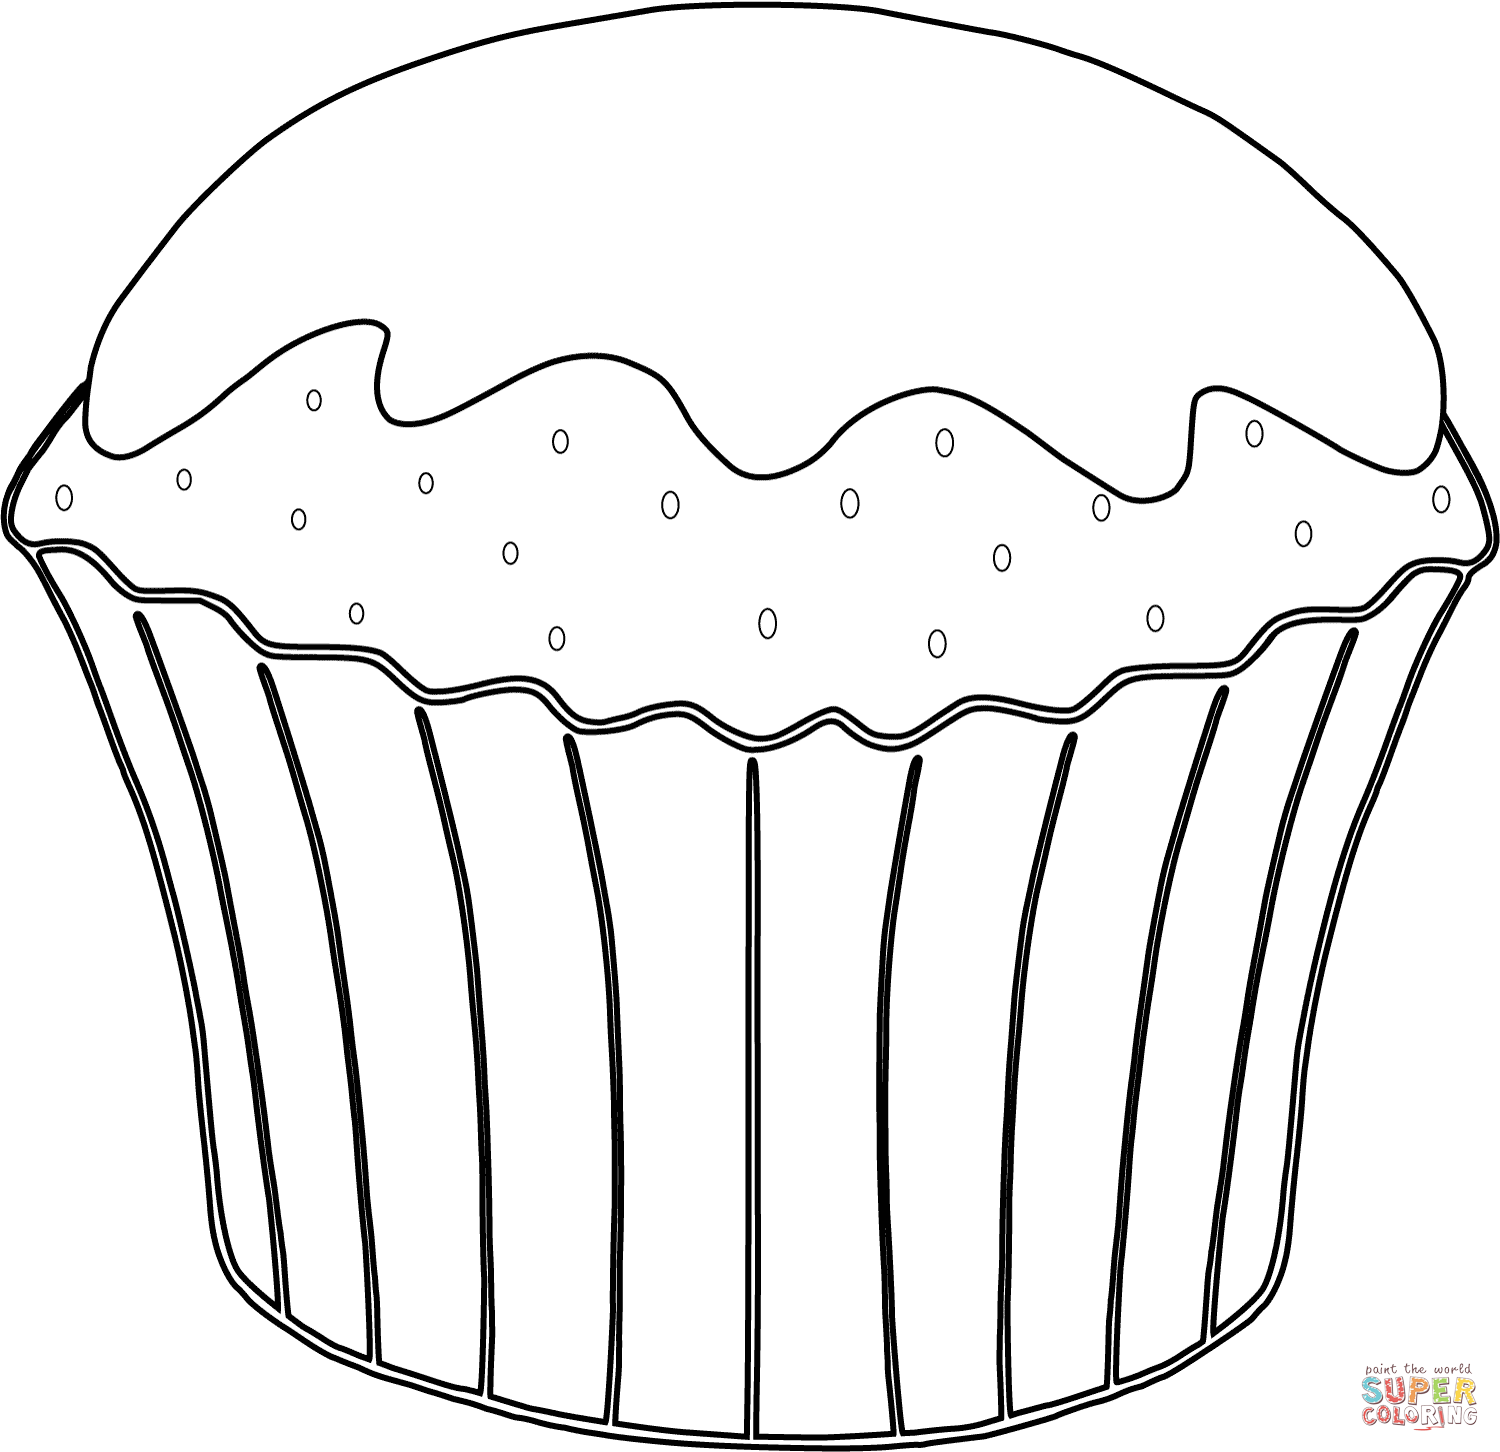 muffin coloring sheet muffin coloring page at getdrawings free download muffin coloring sheet